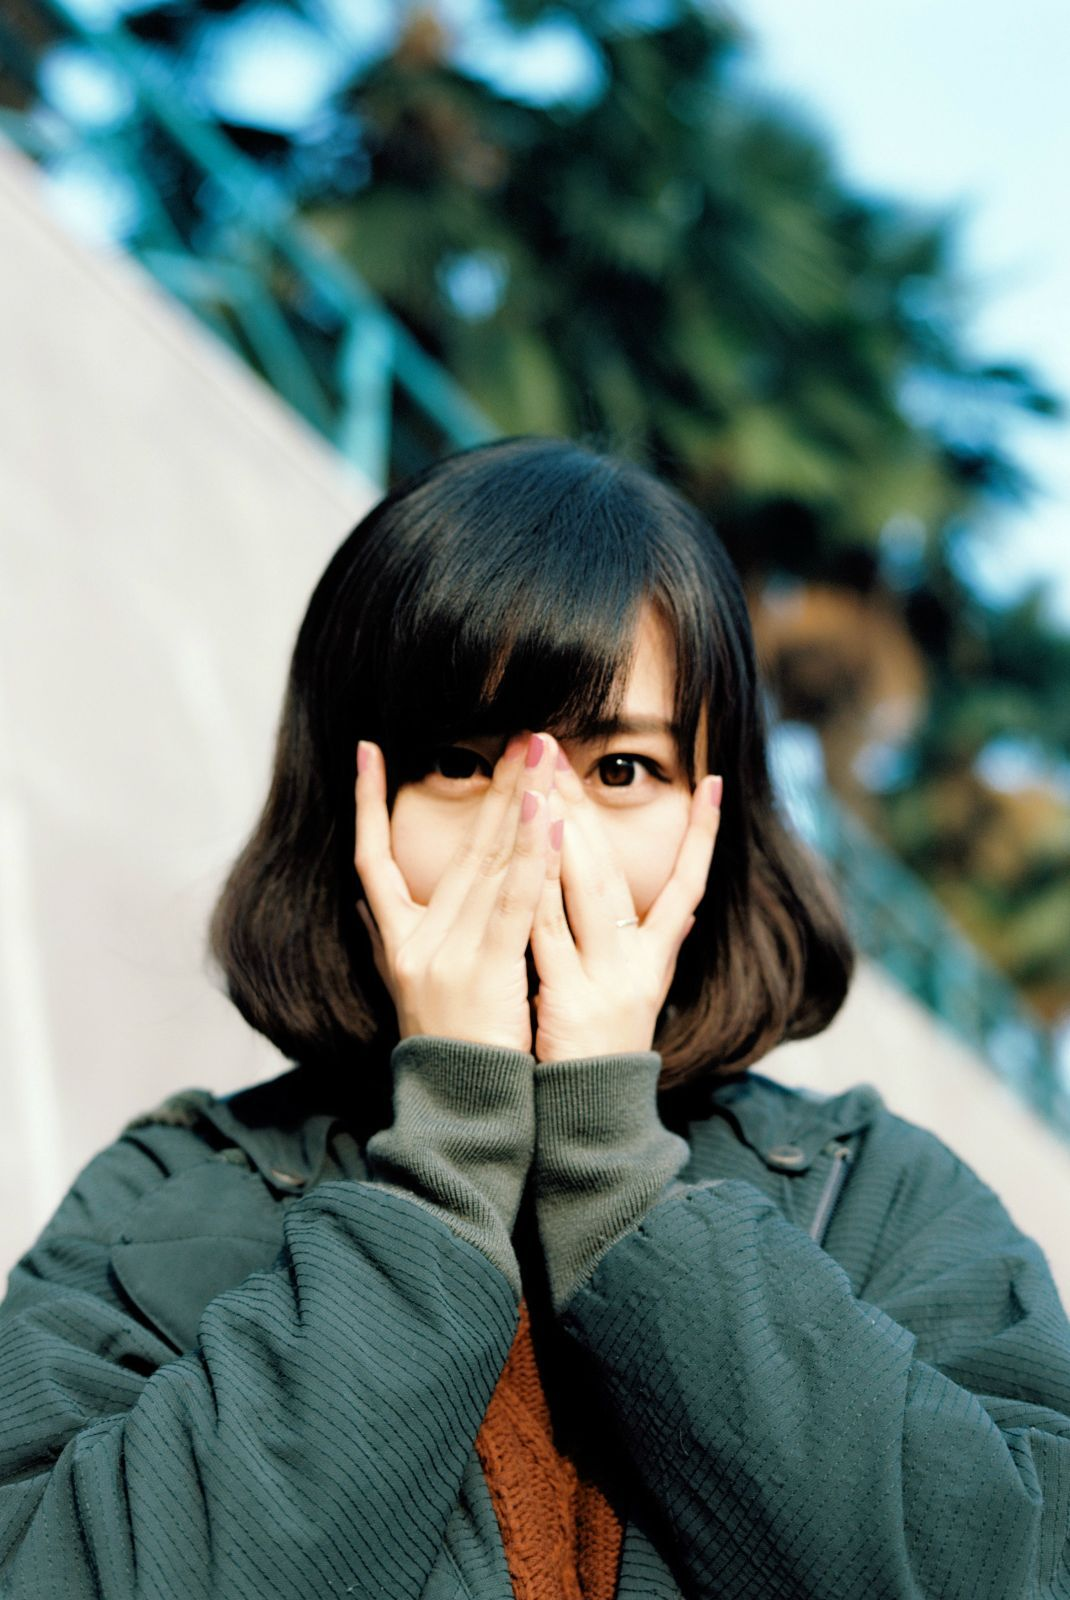 Stranger anxiety short hair pinterest ulzzang girls and portraits